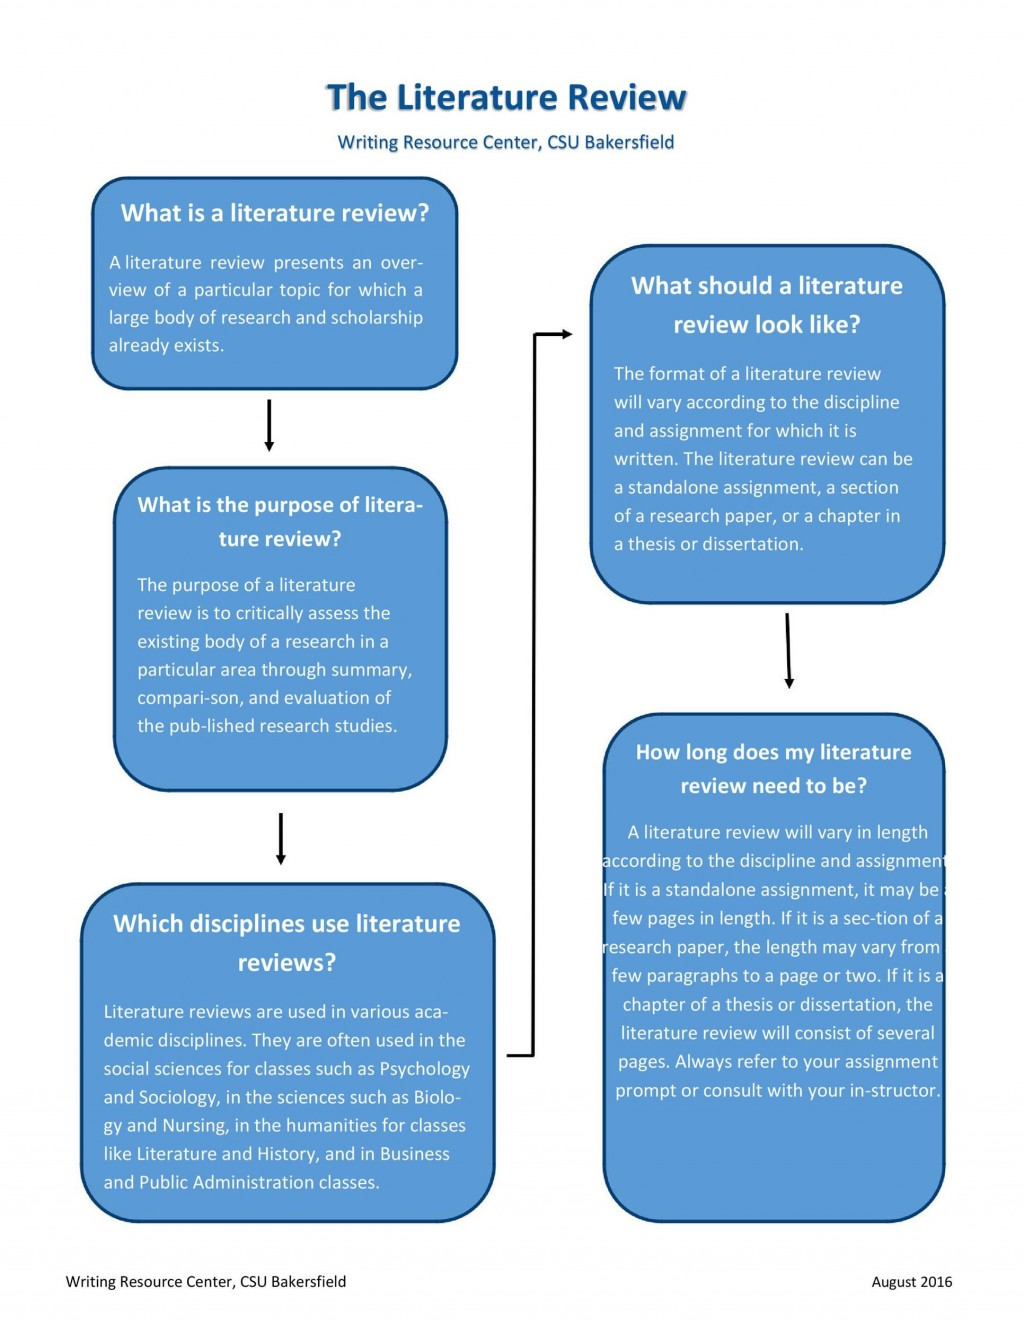 005 Remarkable Literature Review Outline Template Apa Image  Style ExampleLarge